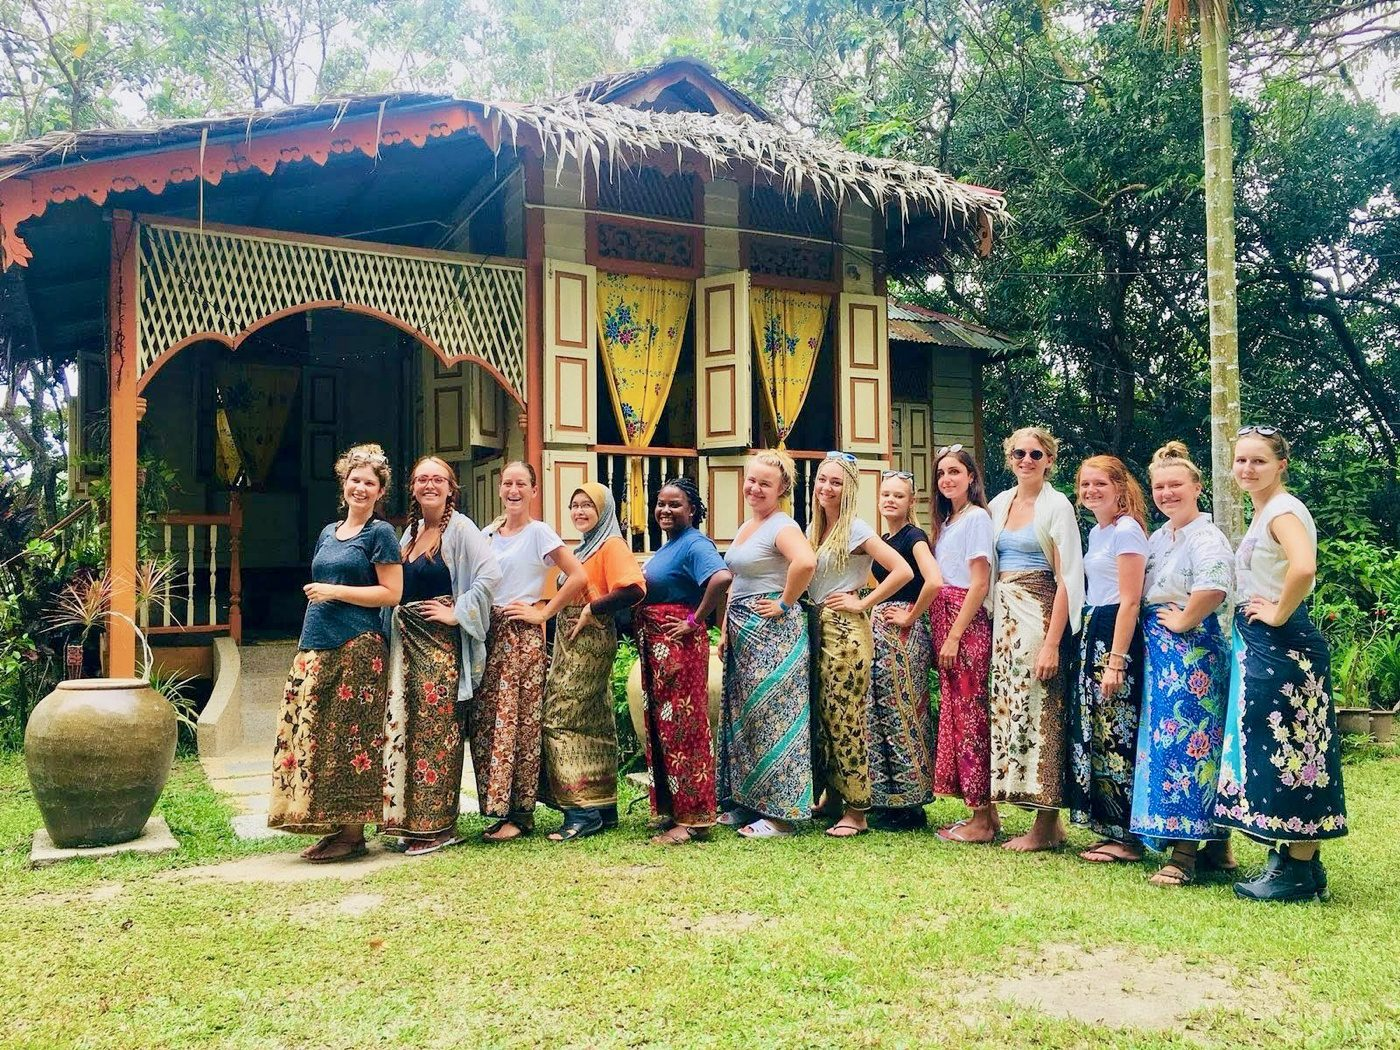 The tour group at the homestay in Malaysia.